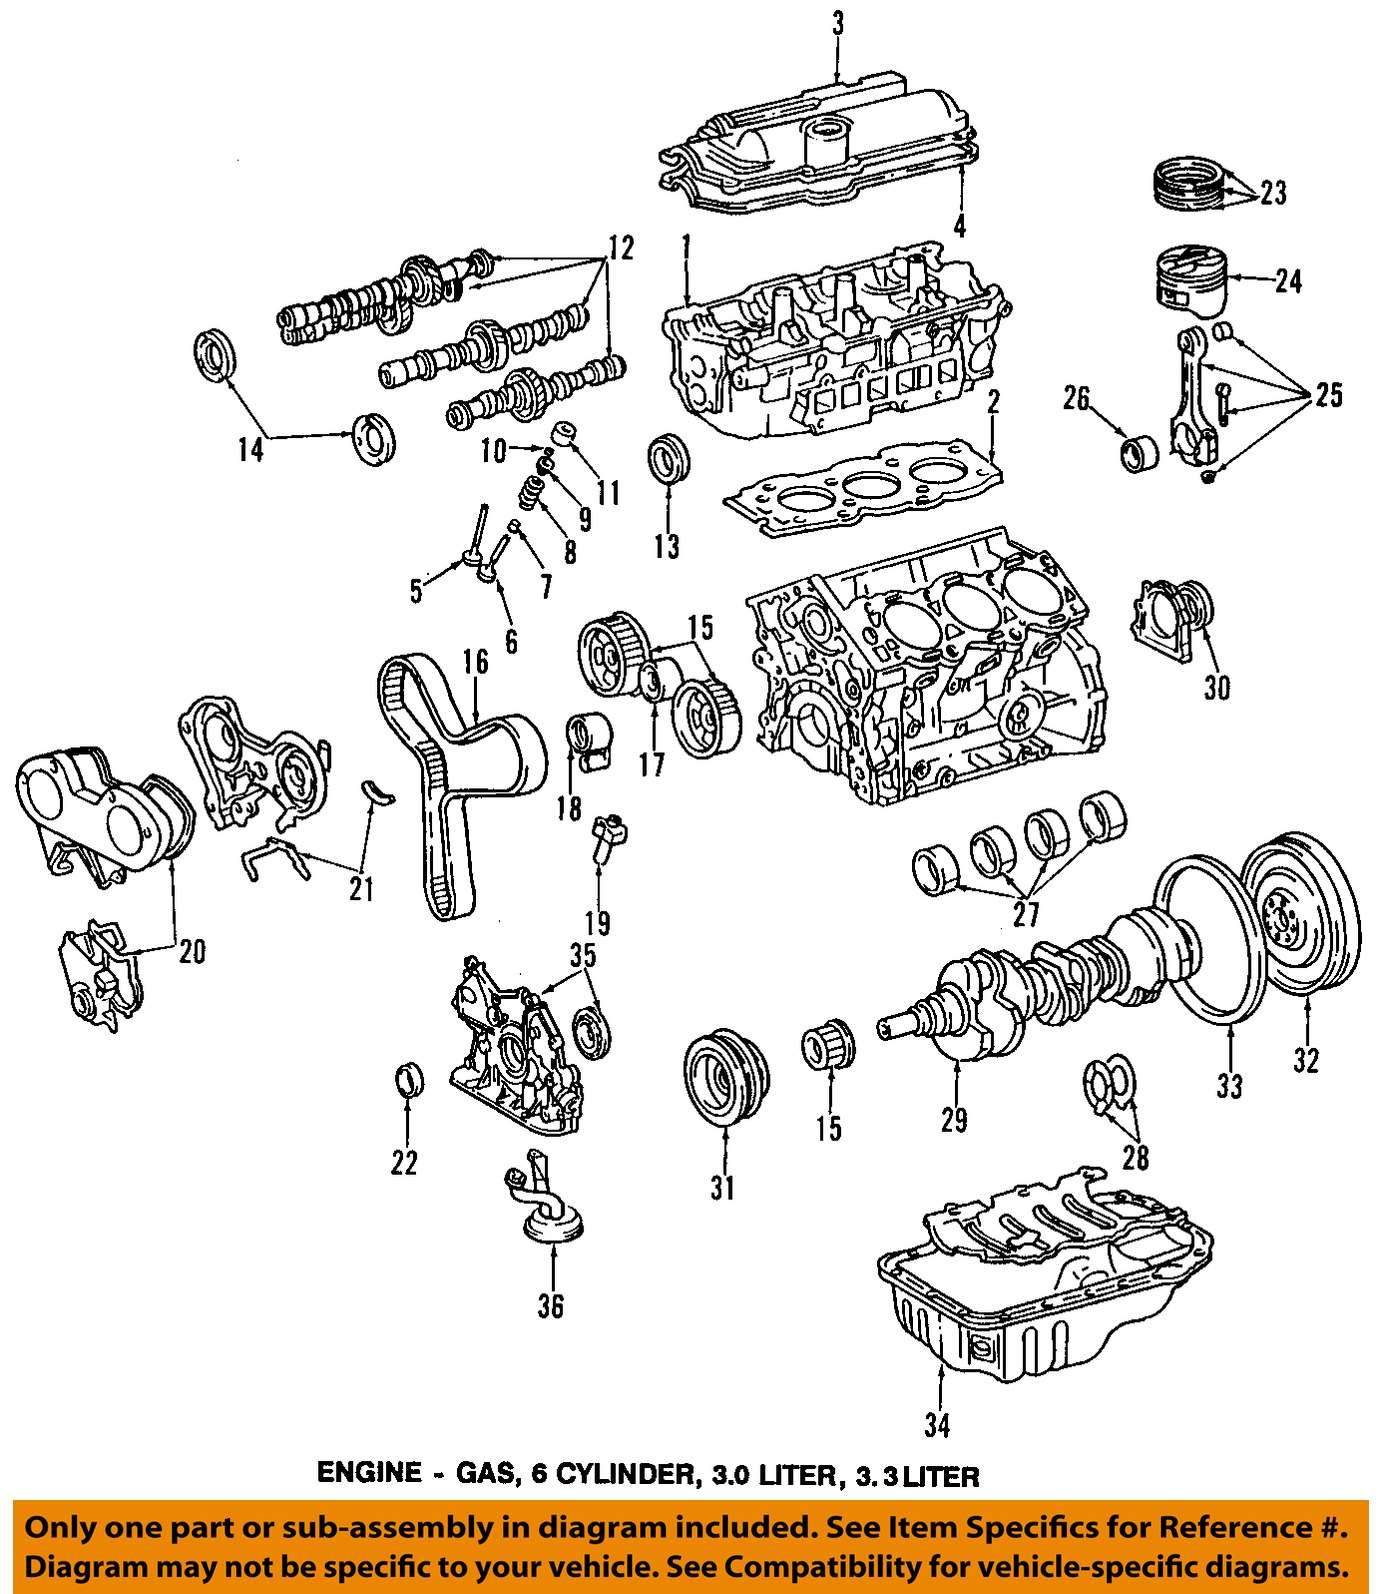 2001 Toyota Avalon Engine Diagram Wiring Schematics Motor Oem Crankshaft Crank Seal 90311 40022 Factory Various Iac